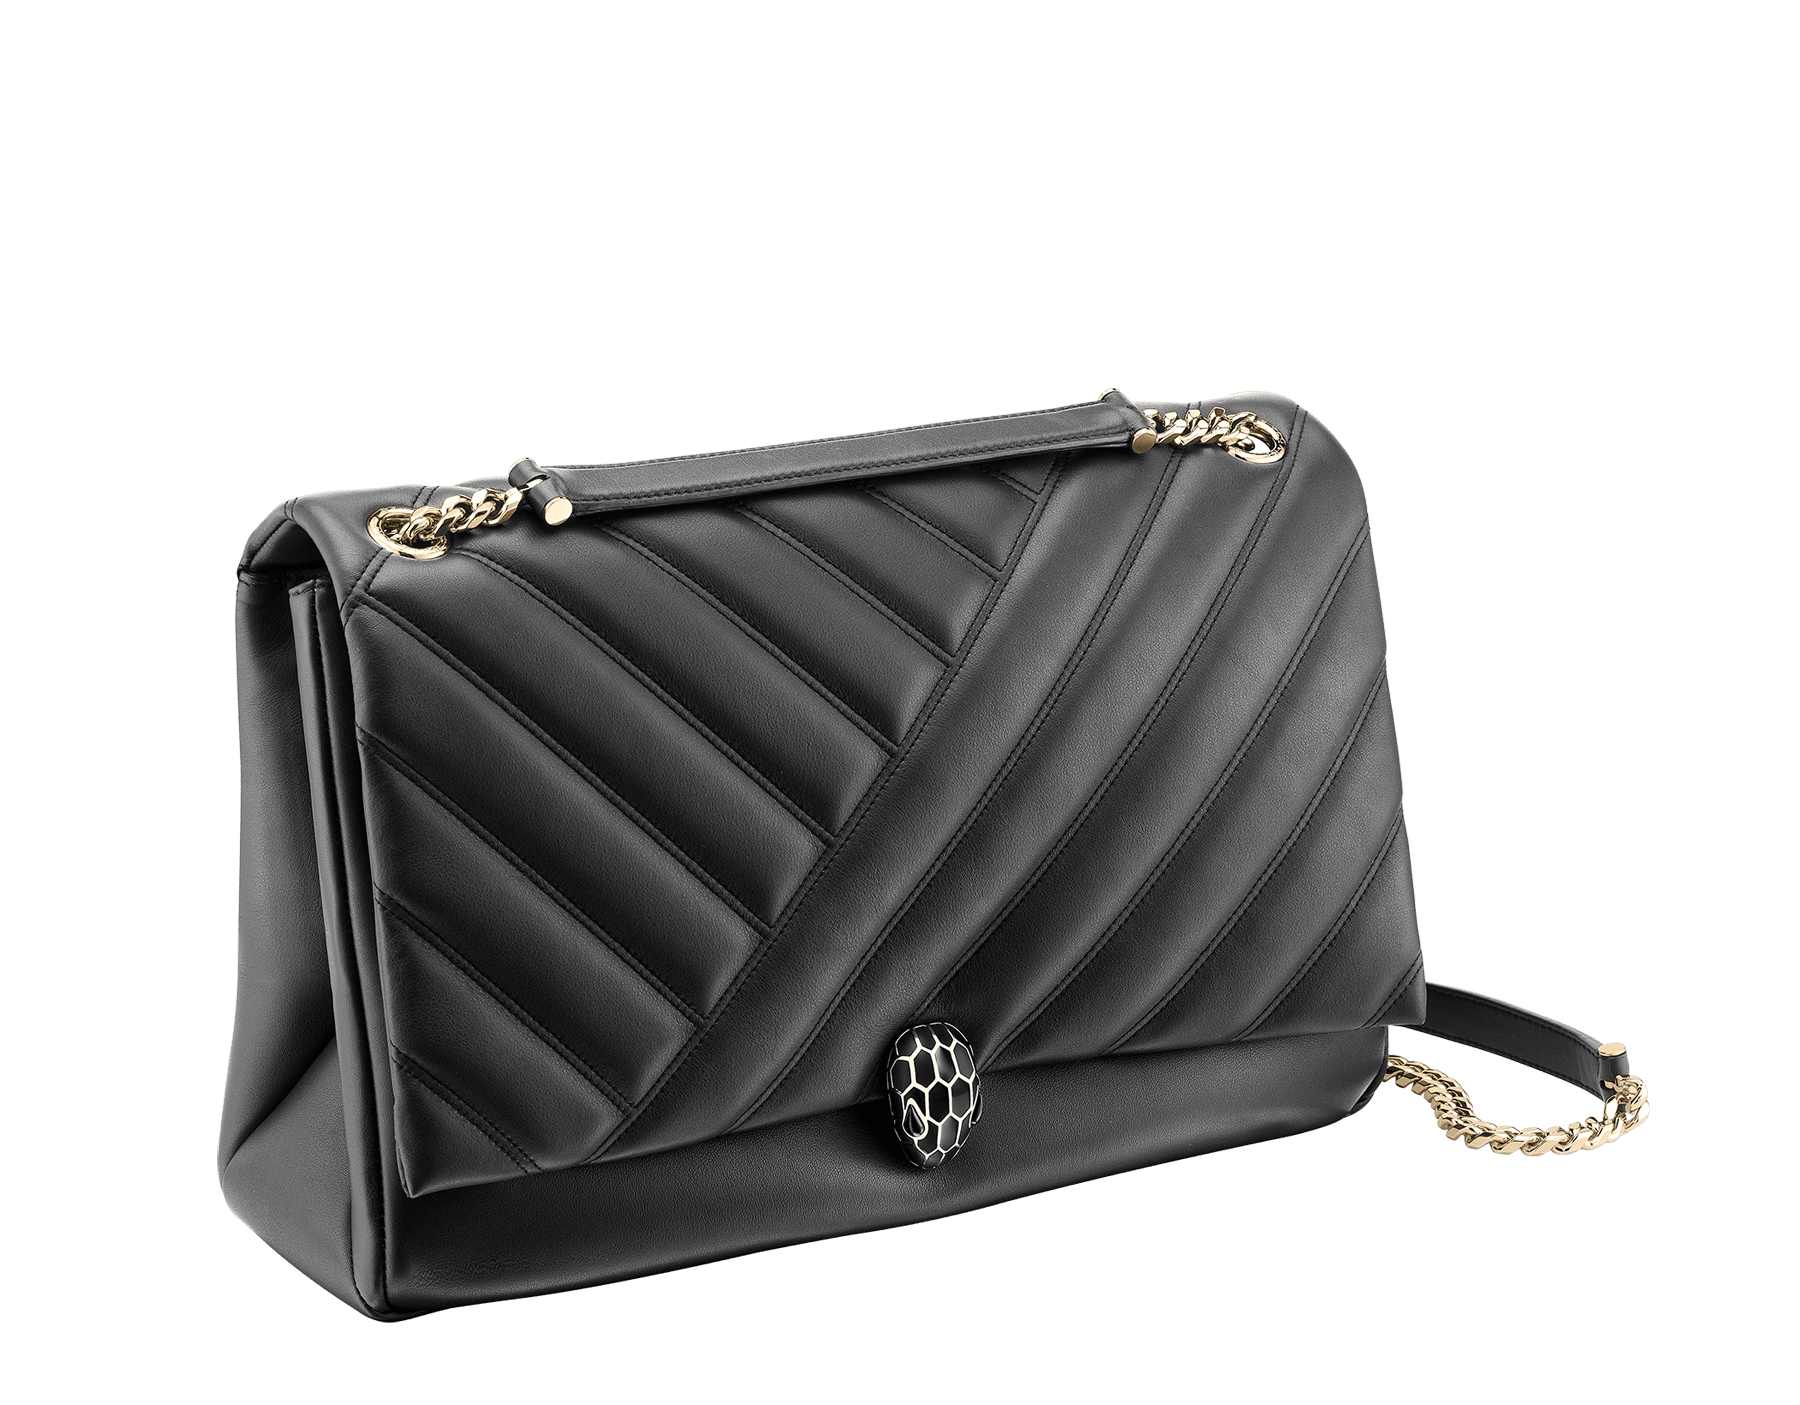 Serpenti Cabochon shoulder bag in soft matelassé black nappa leather with graphic motif and black calf leather. Snakehead closure in rose gold plated brass decorated with matte black and shiny black enamel, and black onyx eyes. 982-NSM image 2